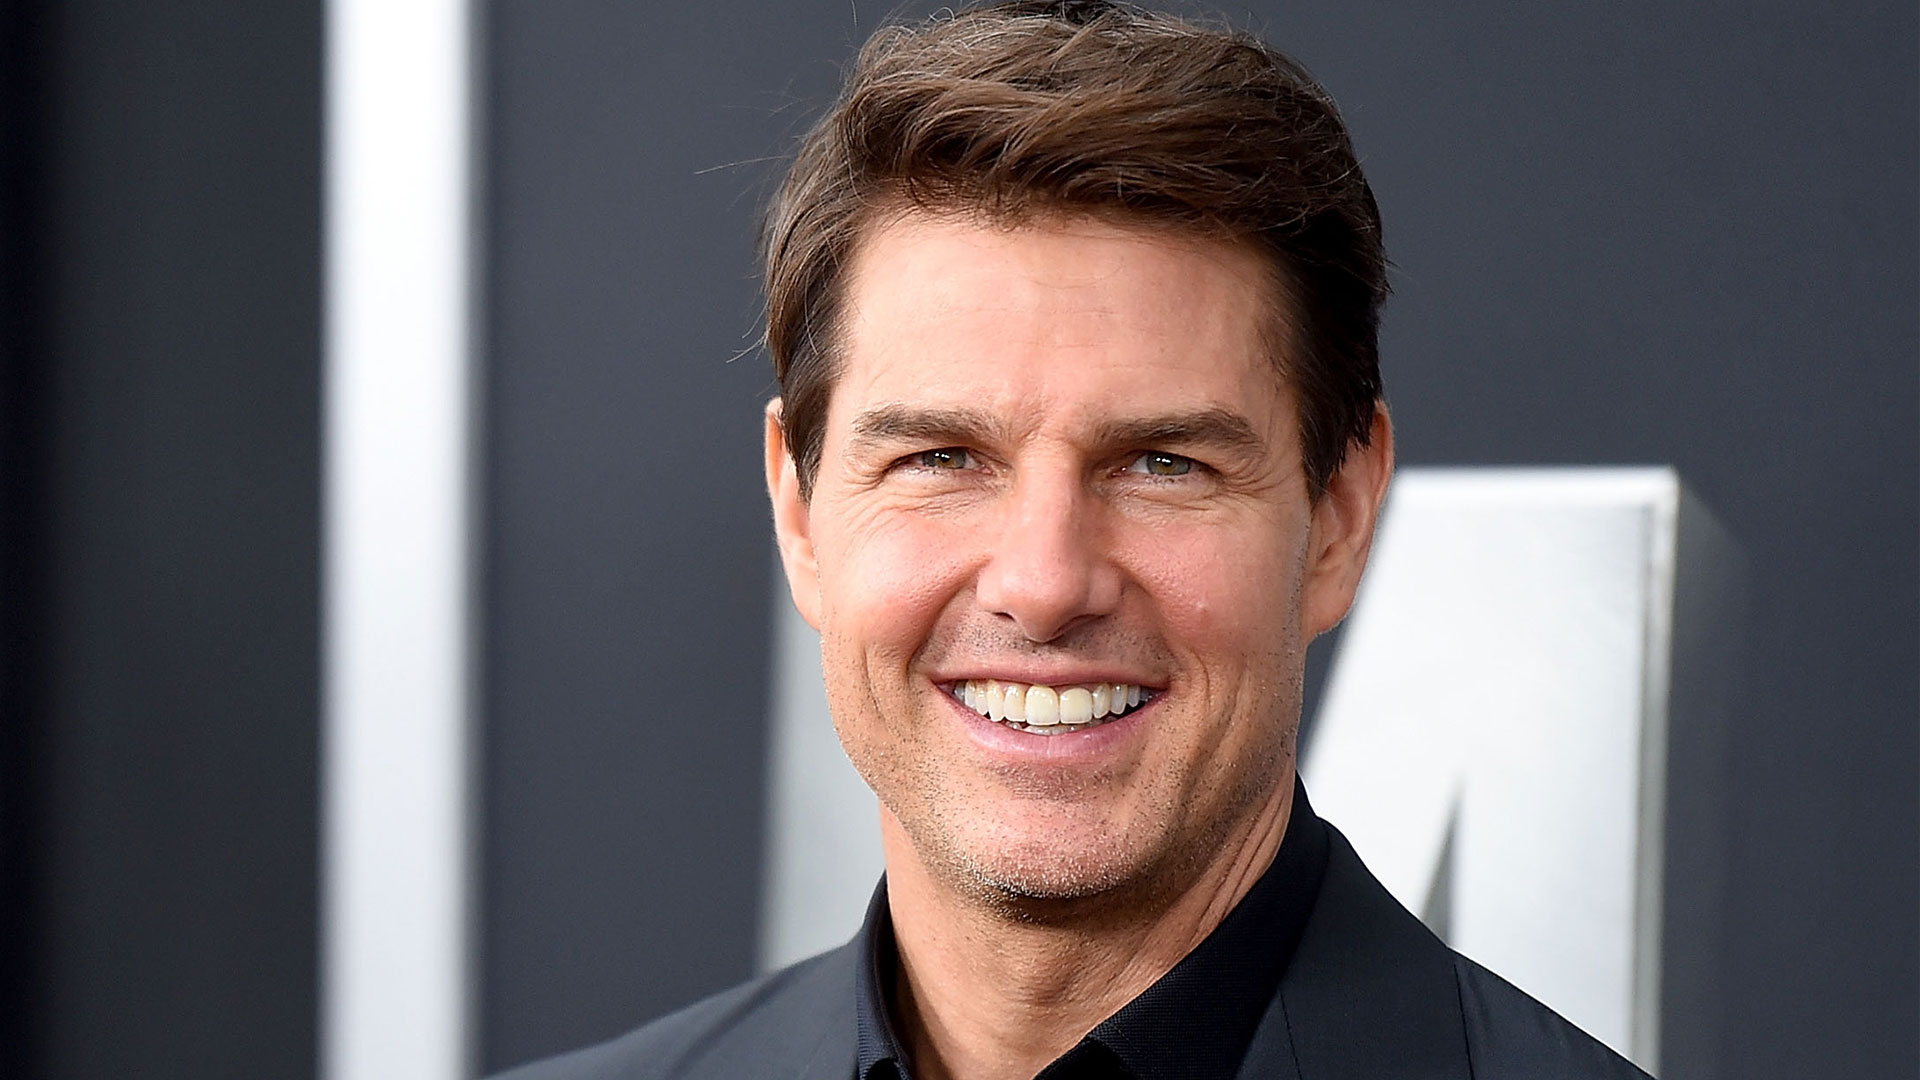 Tom Cruise Offers Family A Helicopter Ride After Landing In Their Garden: 'It Was Surreal'